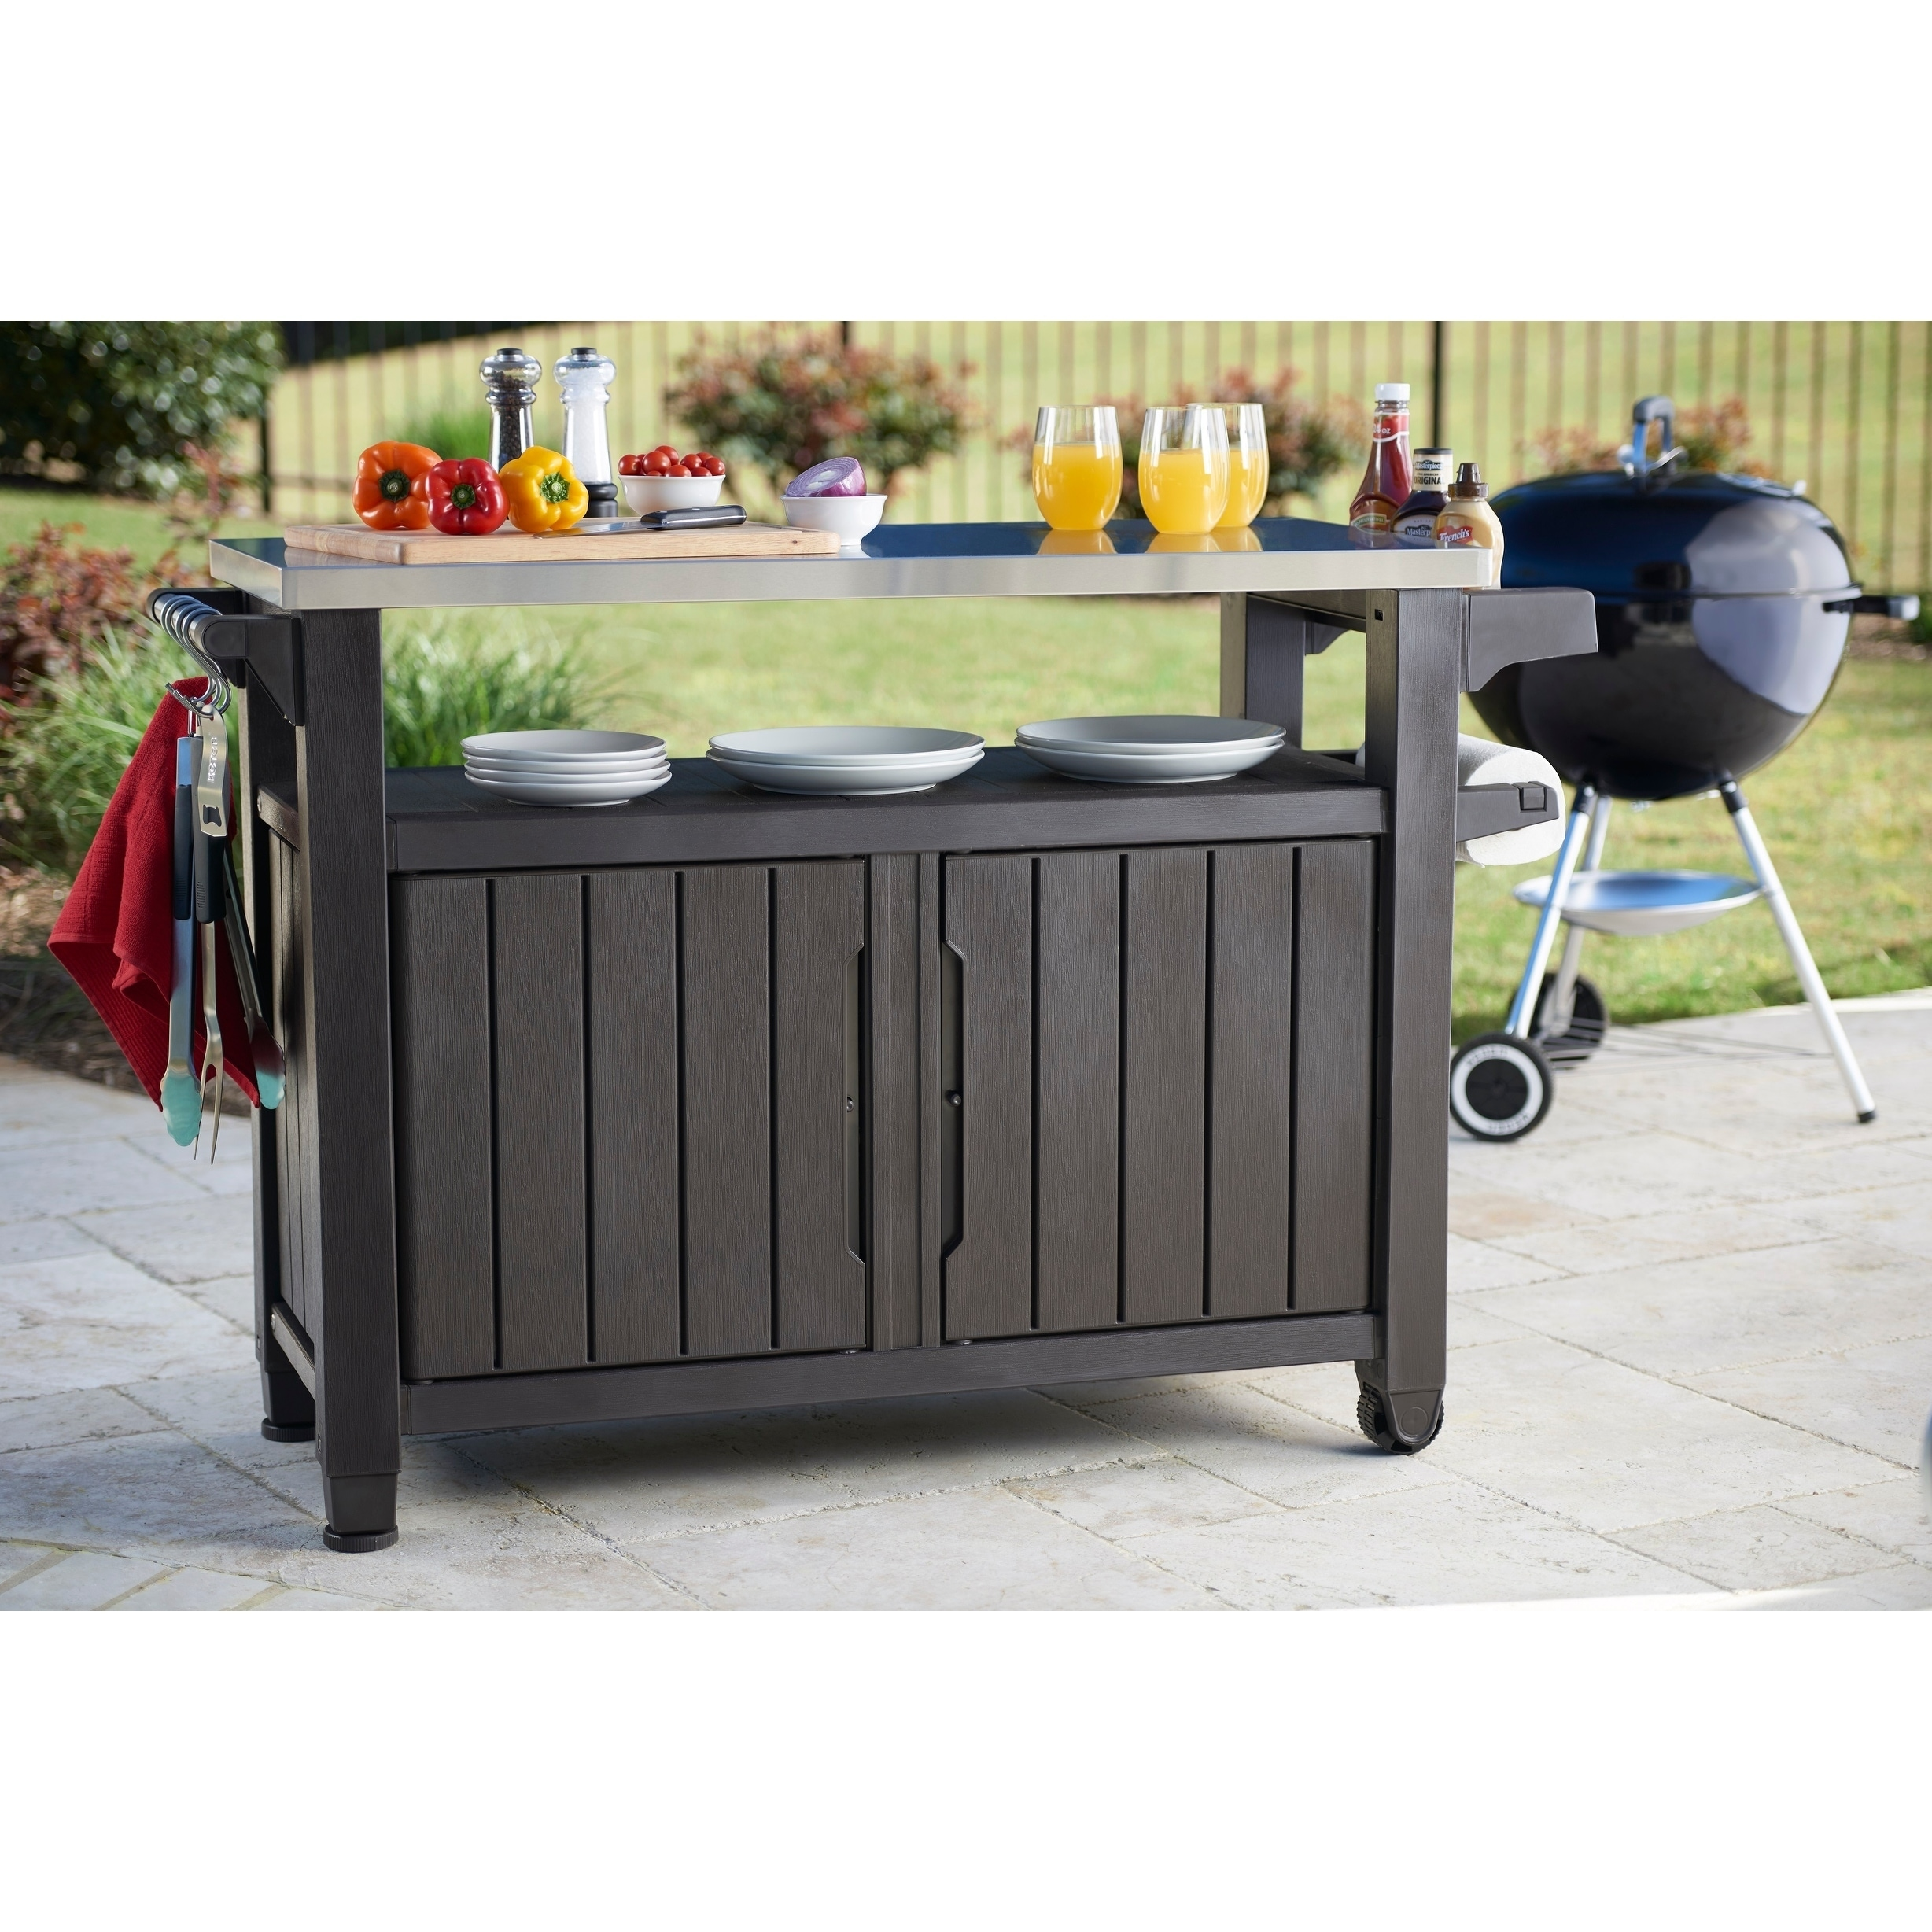 Elegant Keter Unity XL Indoor Outdoor Serving Cart Prep Station With Storage   Free  Shipping Today   Overstock.com   24041979